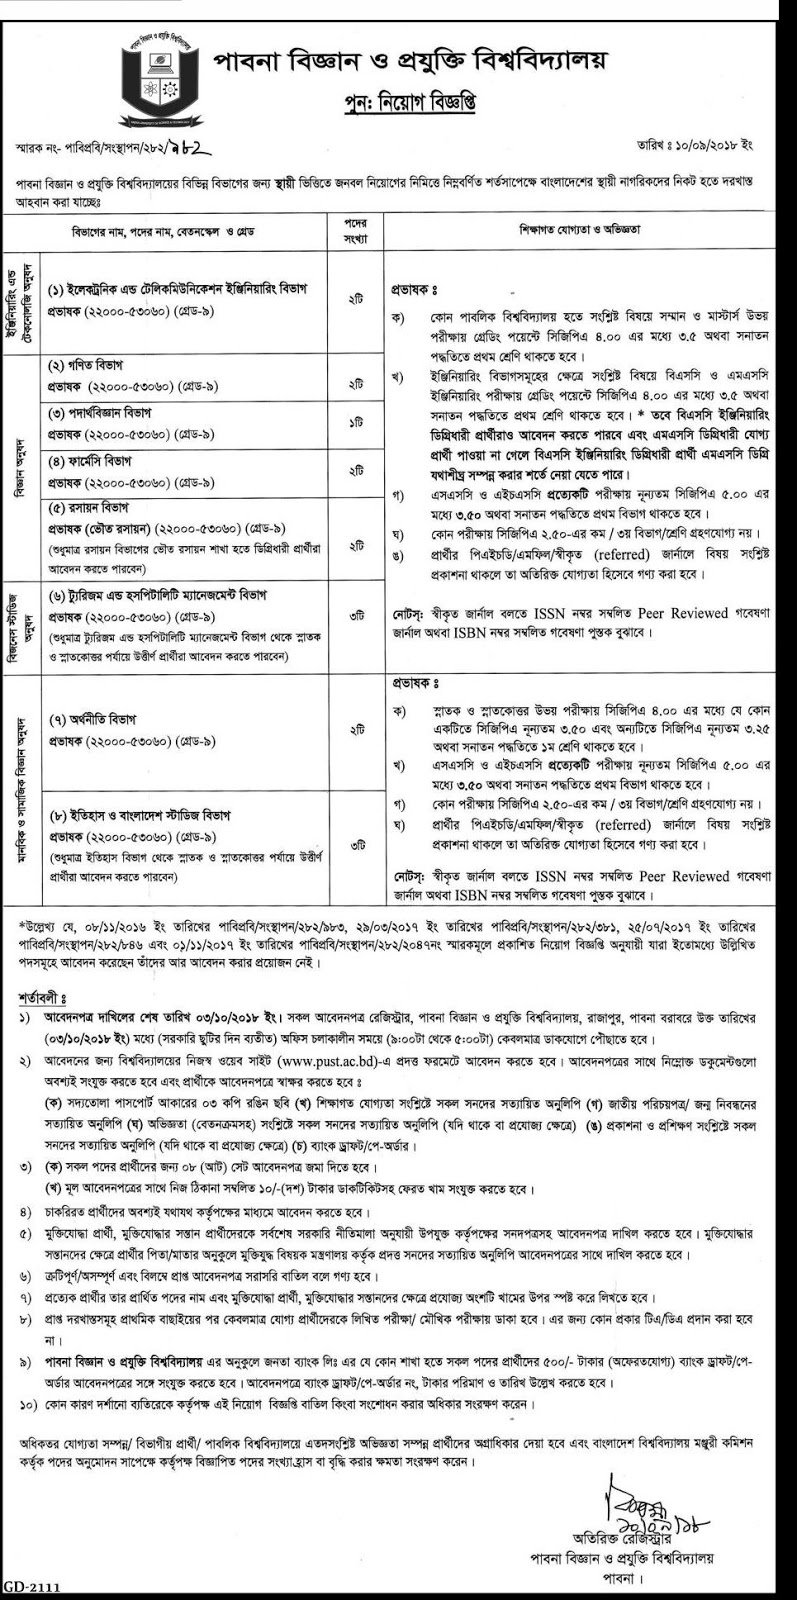 Pabna University of Science & Technology (PUST) Job Apply Instruction, Educational Qualification, Salary, Application Fee, Age and Other Information